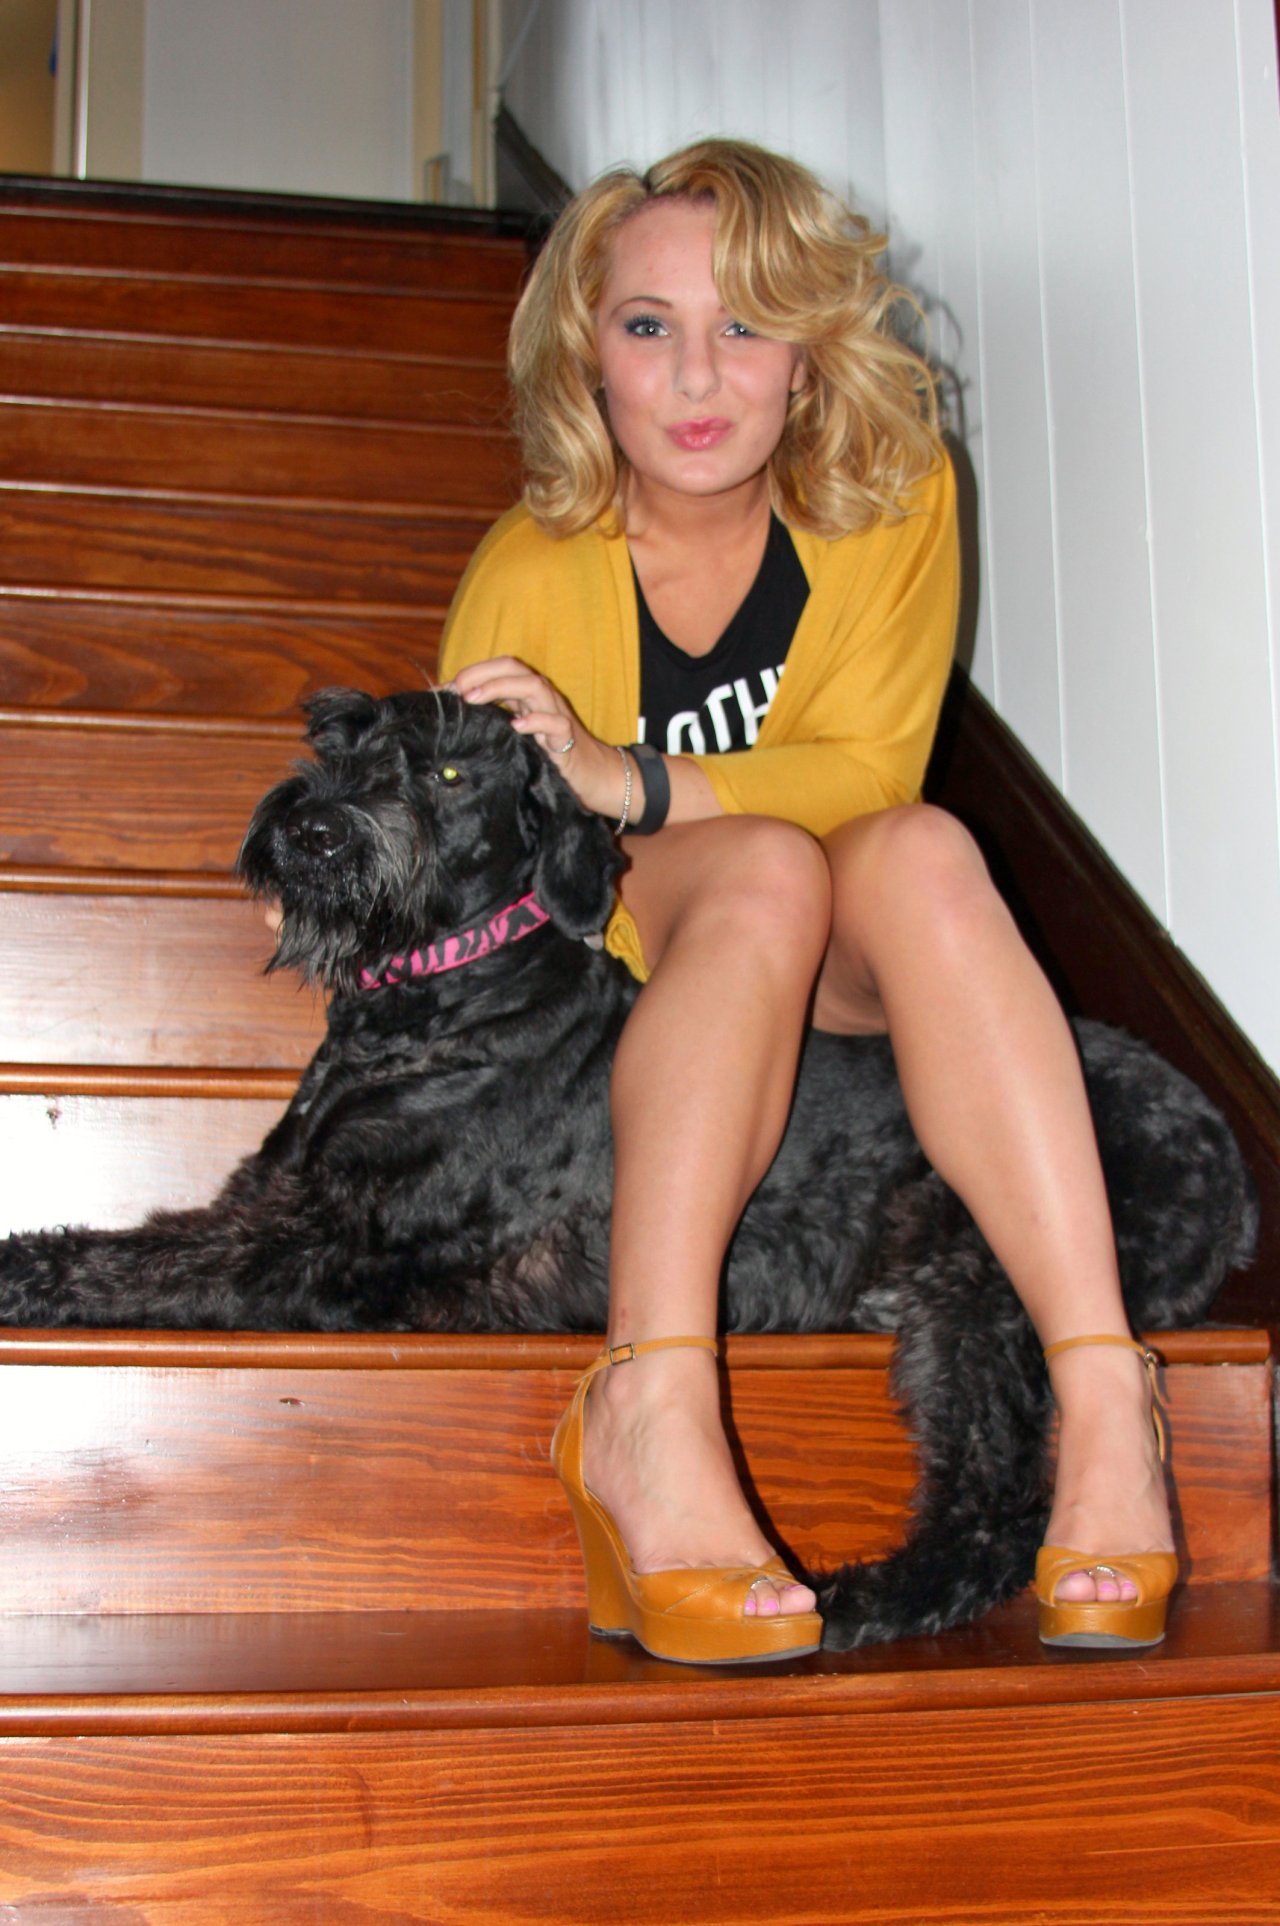 Clothes (and Giant Schnauzers) before Bros *wink* Oh, how I love my precious furbaby Ziva...even though she is HIGHLY uncooperative when I try to include her in my photo shoots haha